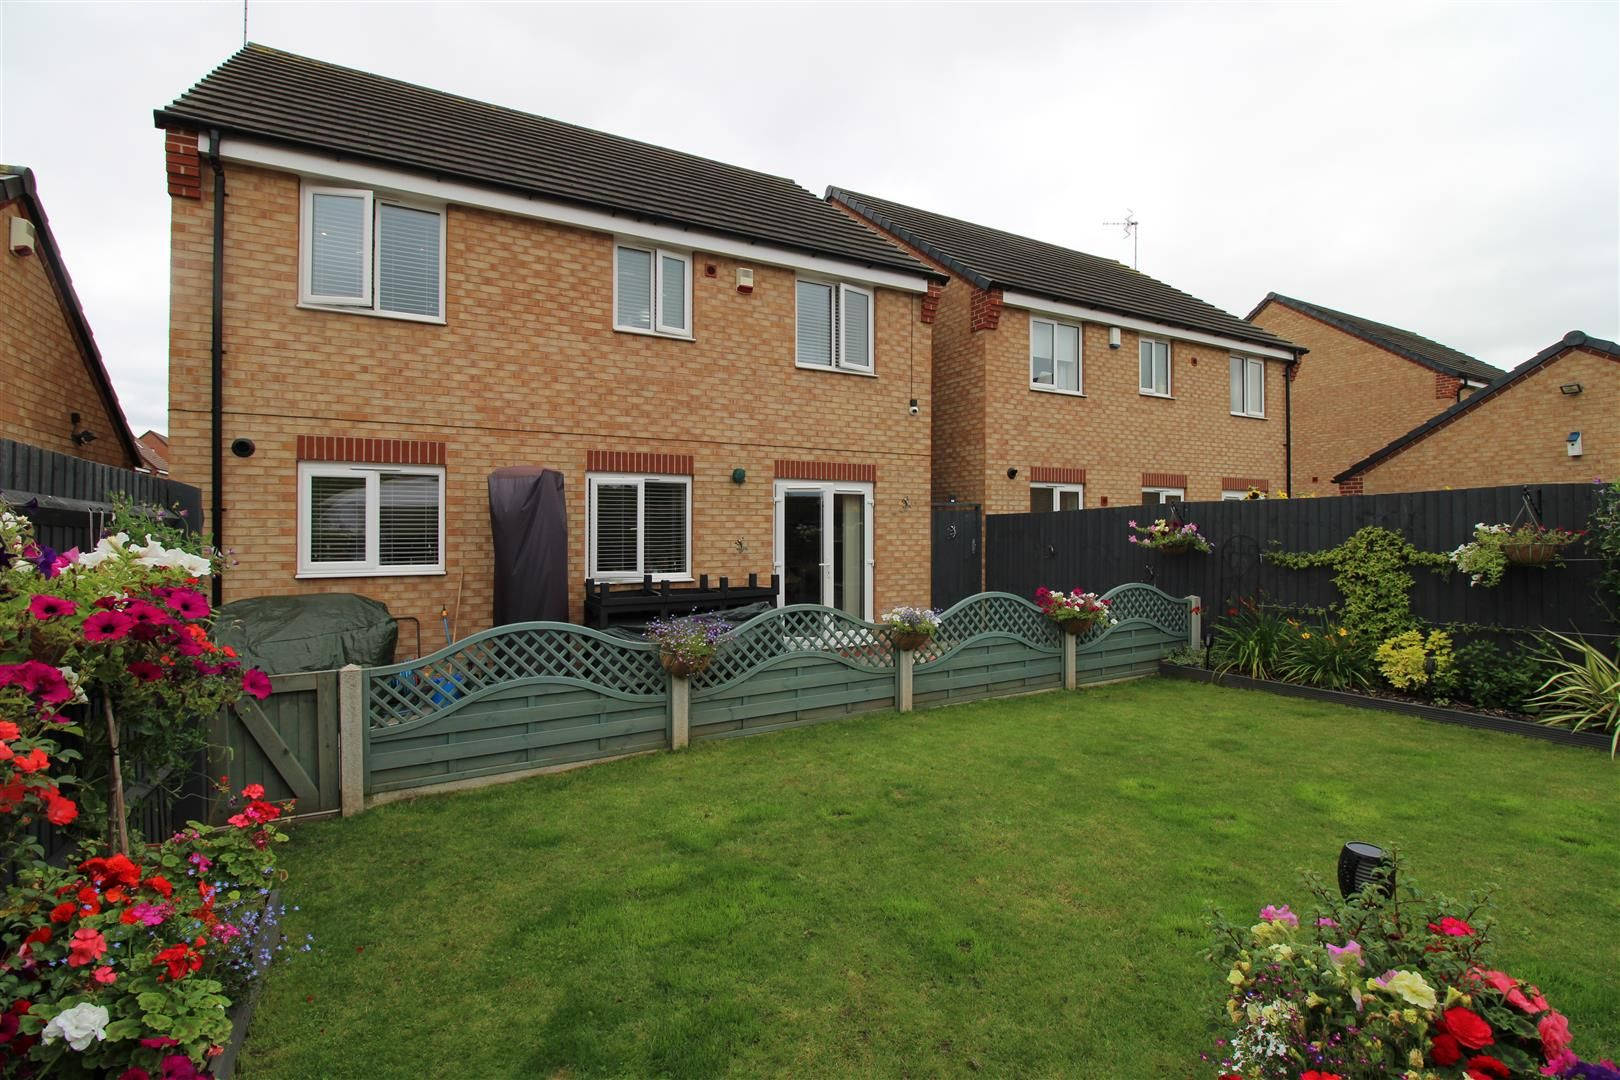 4 bed detached for sale 24